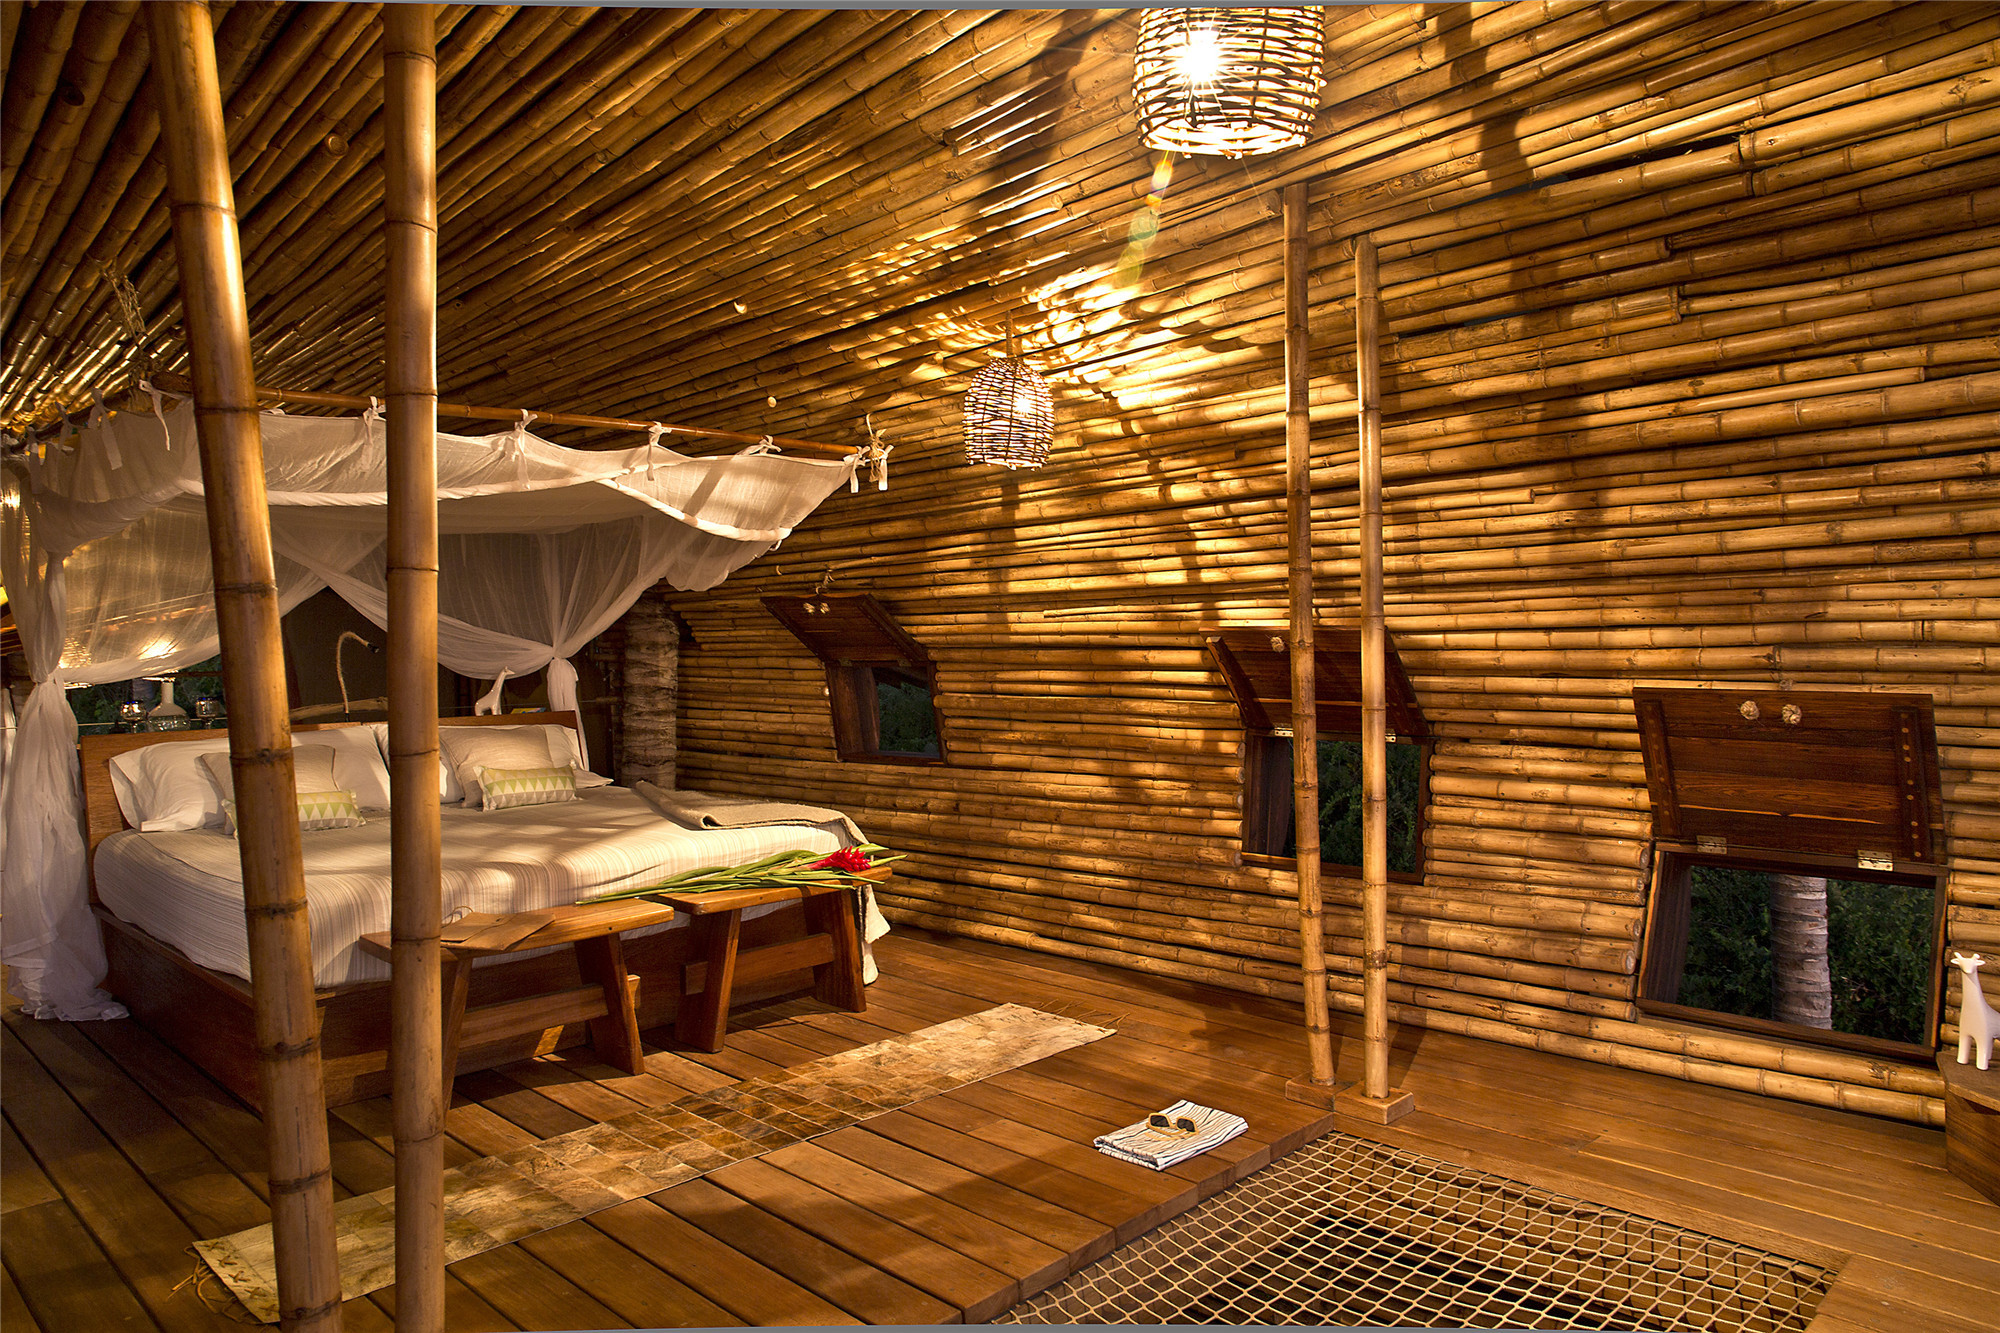 diy treehouse made from bamboo and wood, double bed with a baldachin, several lit lamps, three windows with open shutters